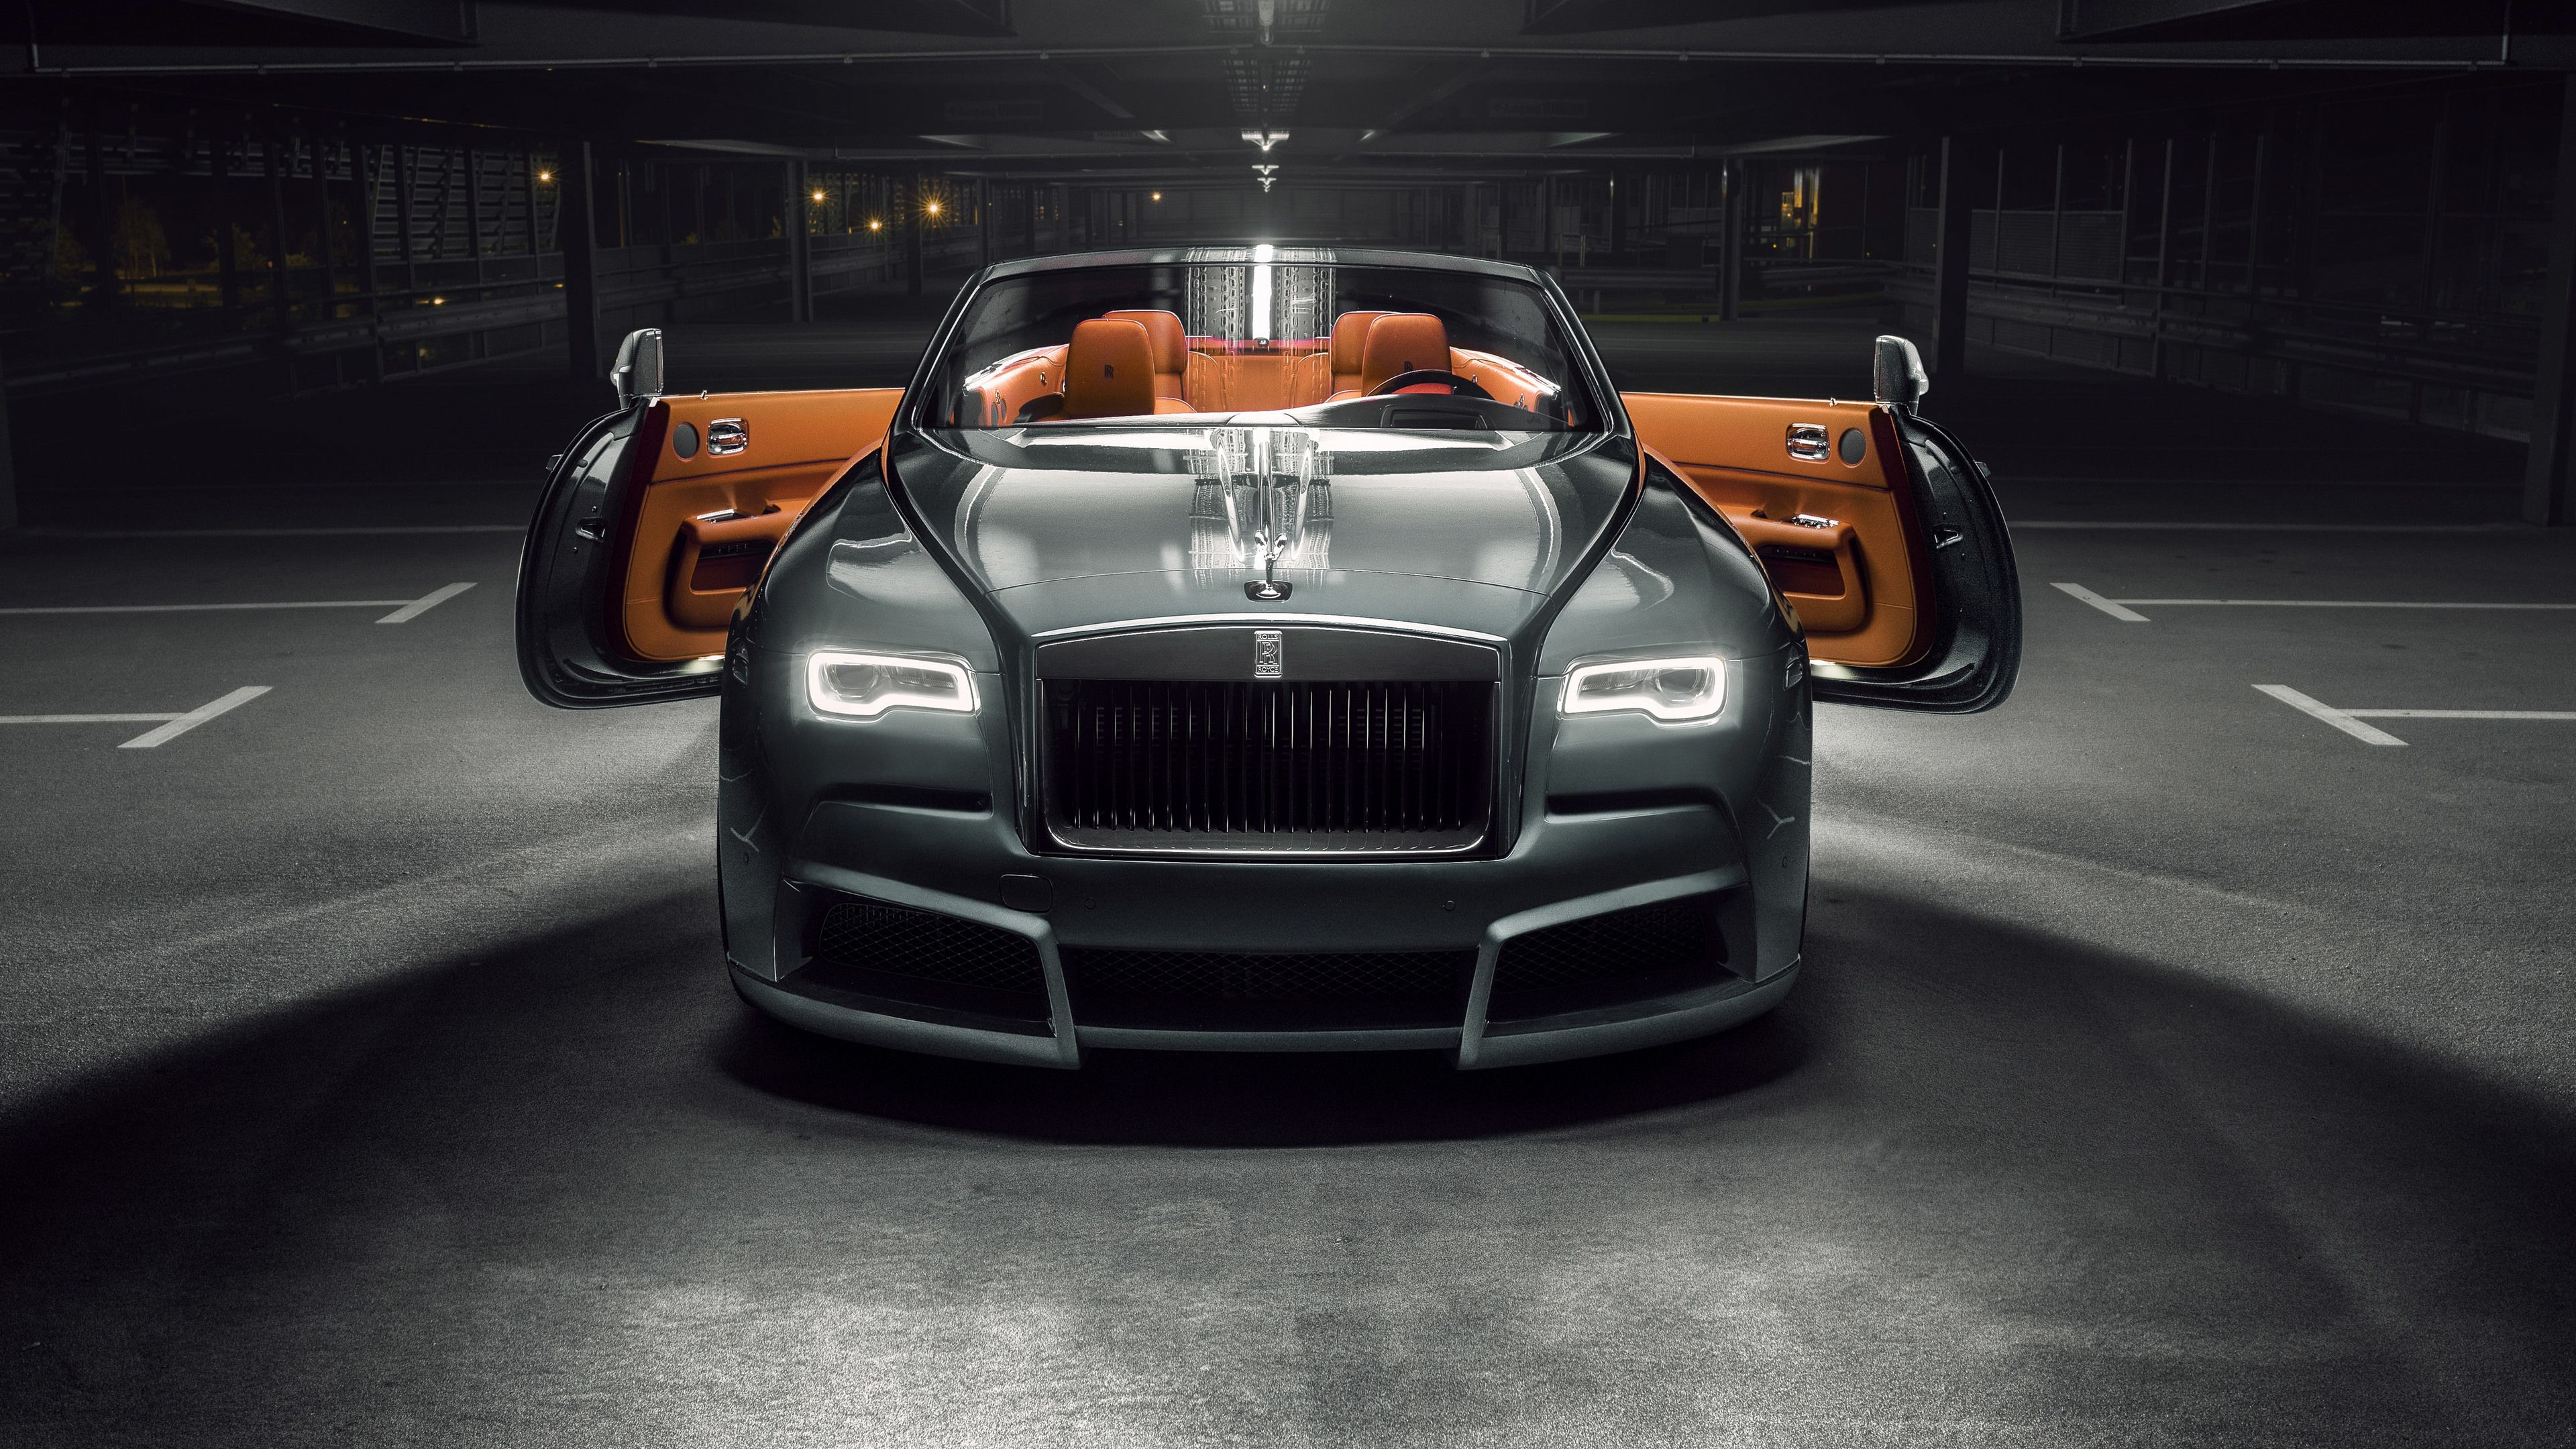 Pin On Cars Wallpapers 4k